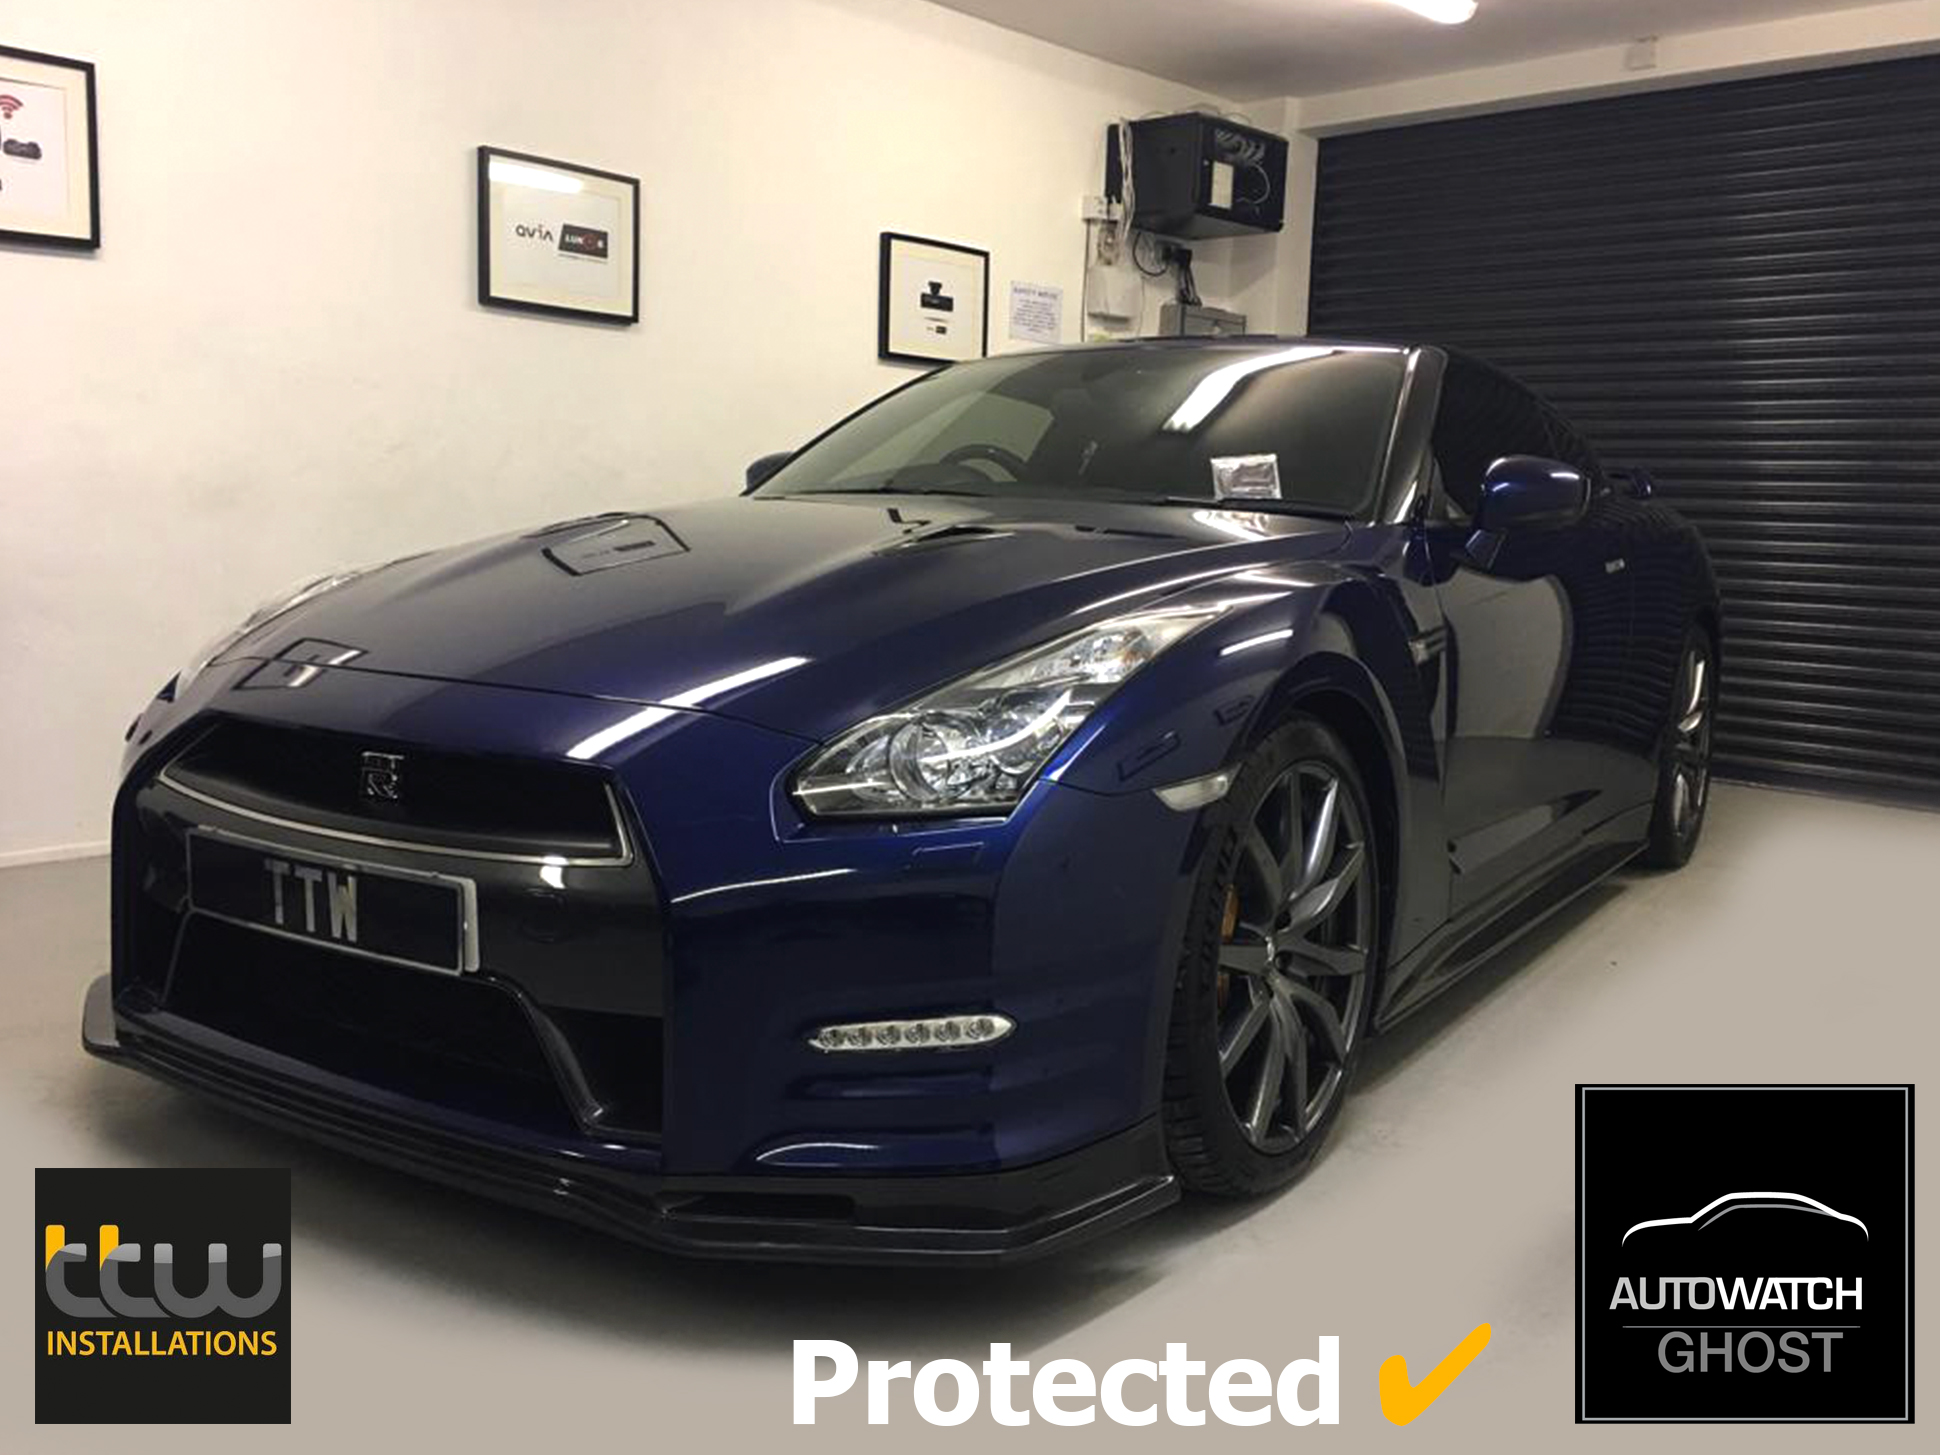 Nissan GTR Autowatch Ghost 2 protected By TTW Installations